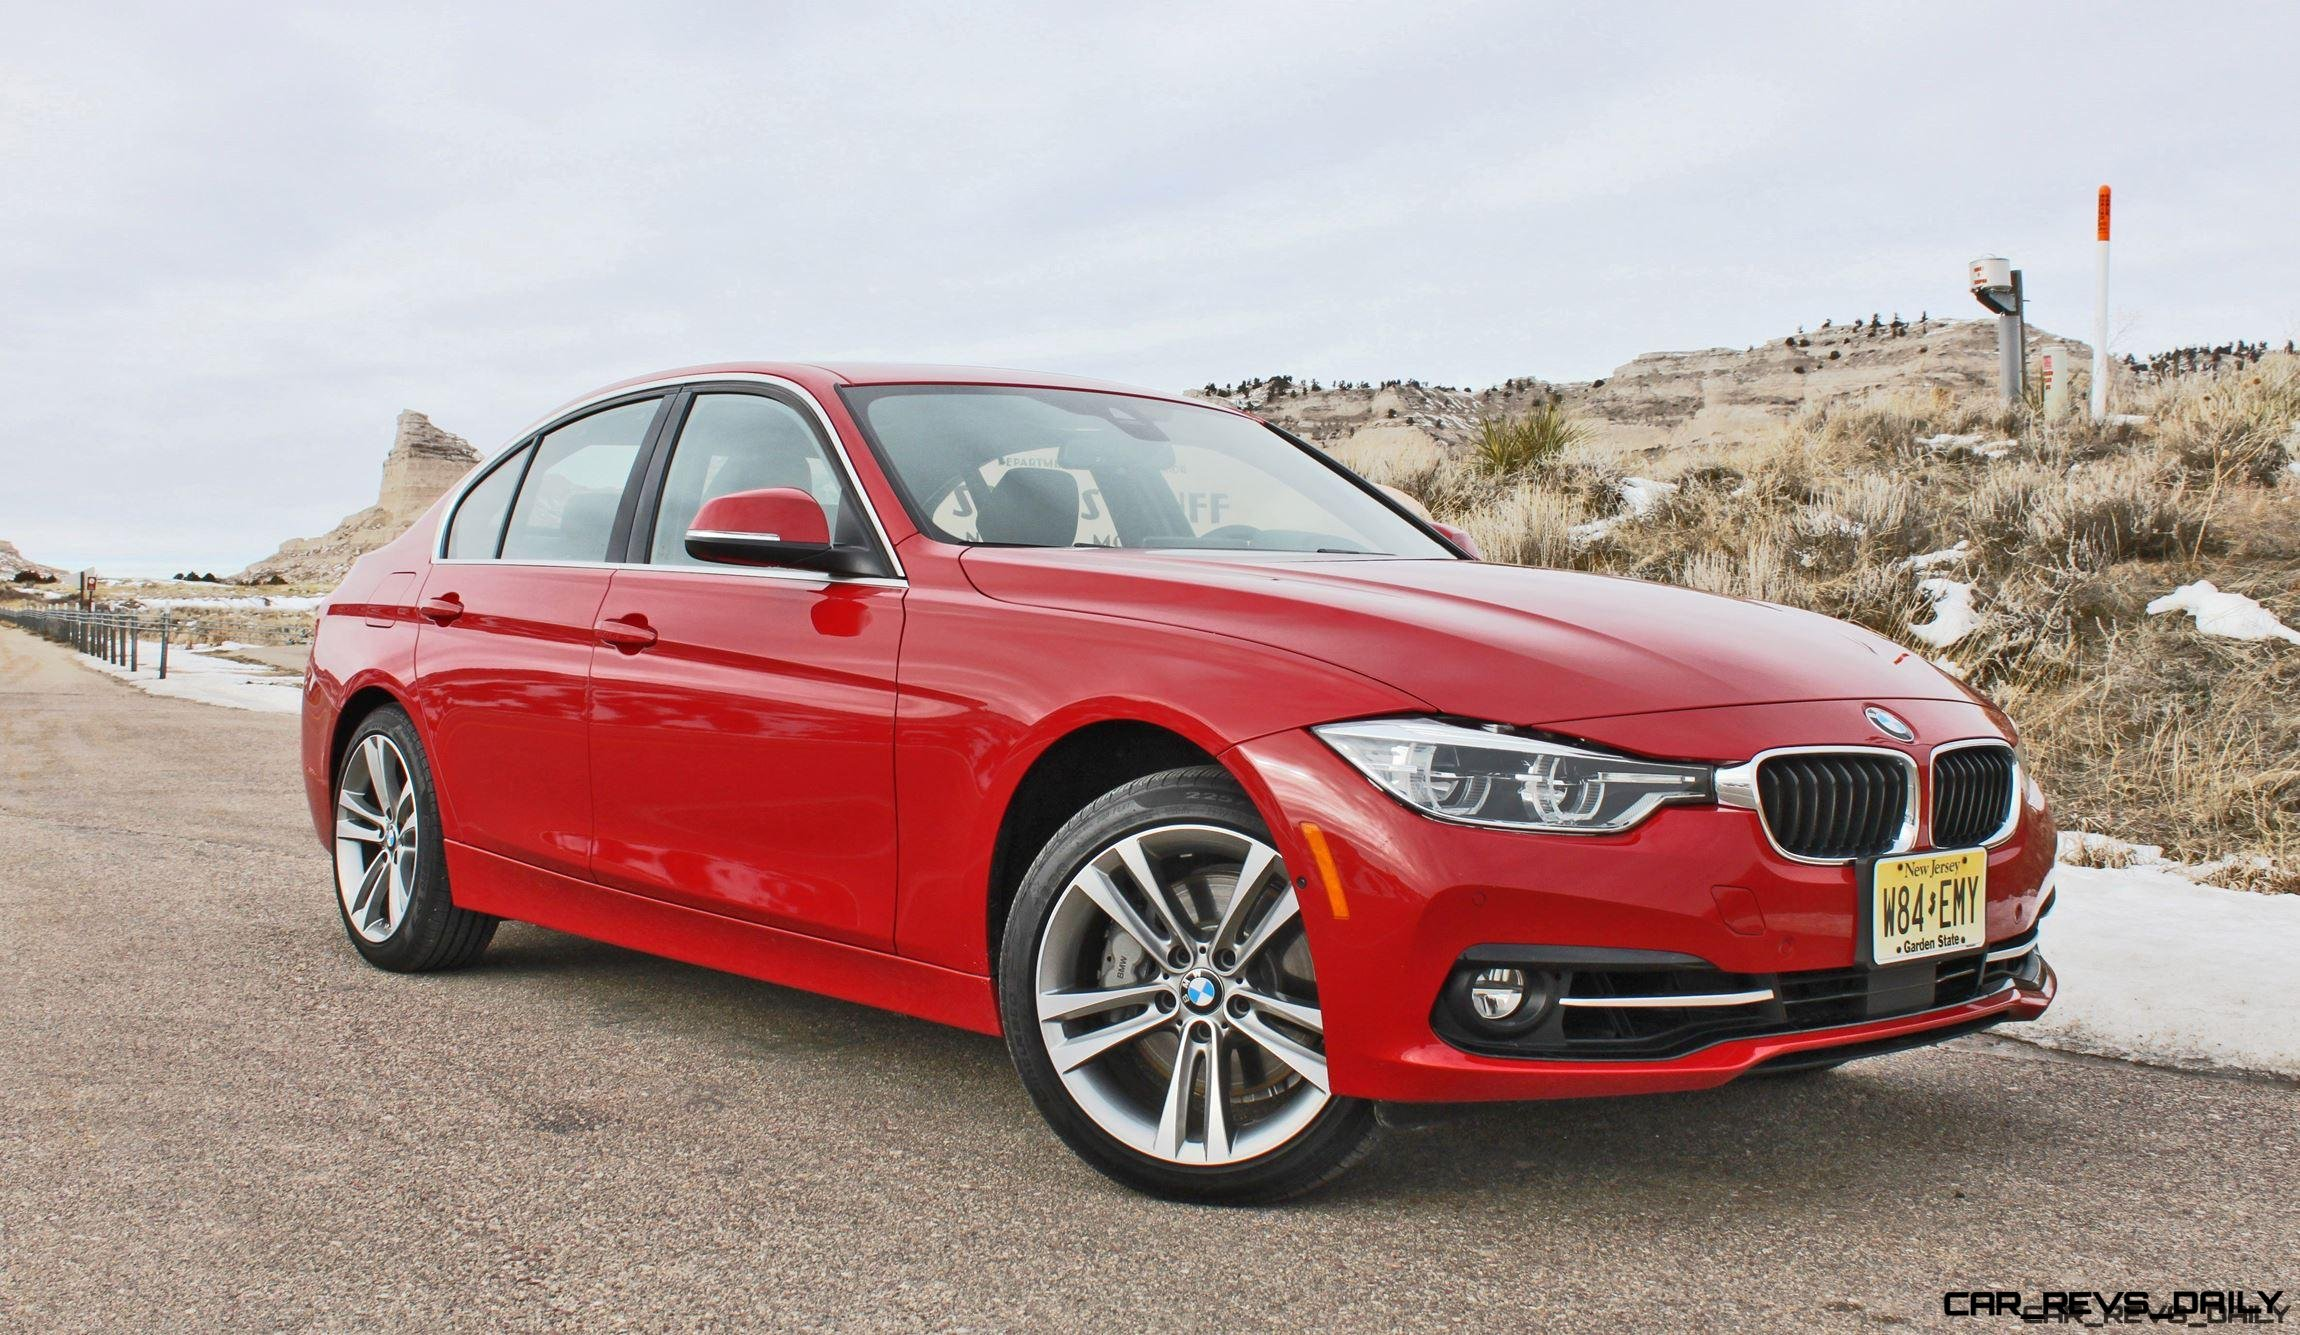 Road Test Review - 2016 BMW 340i xDrive - By Tim Esterdahl 9